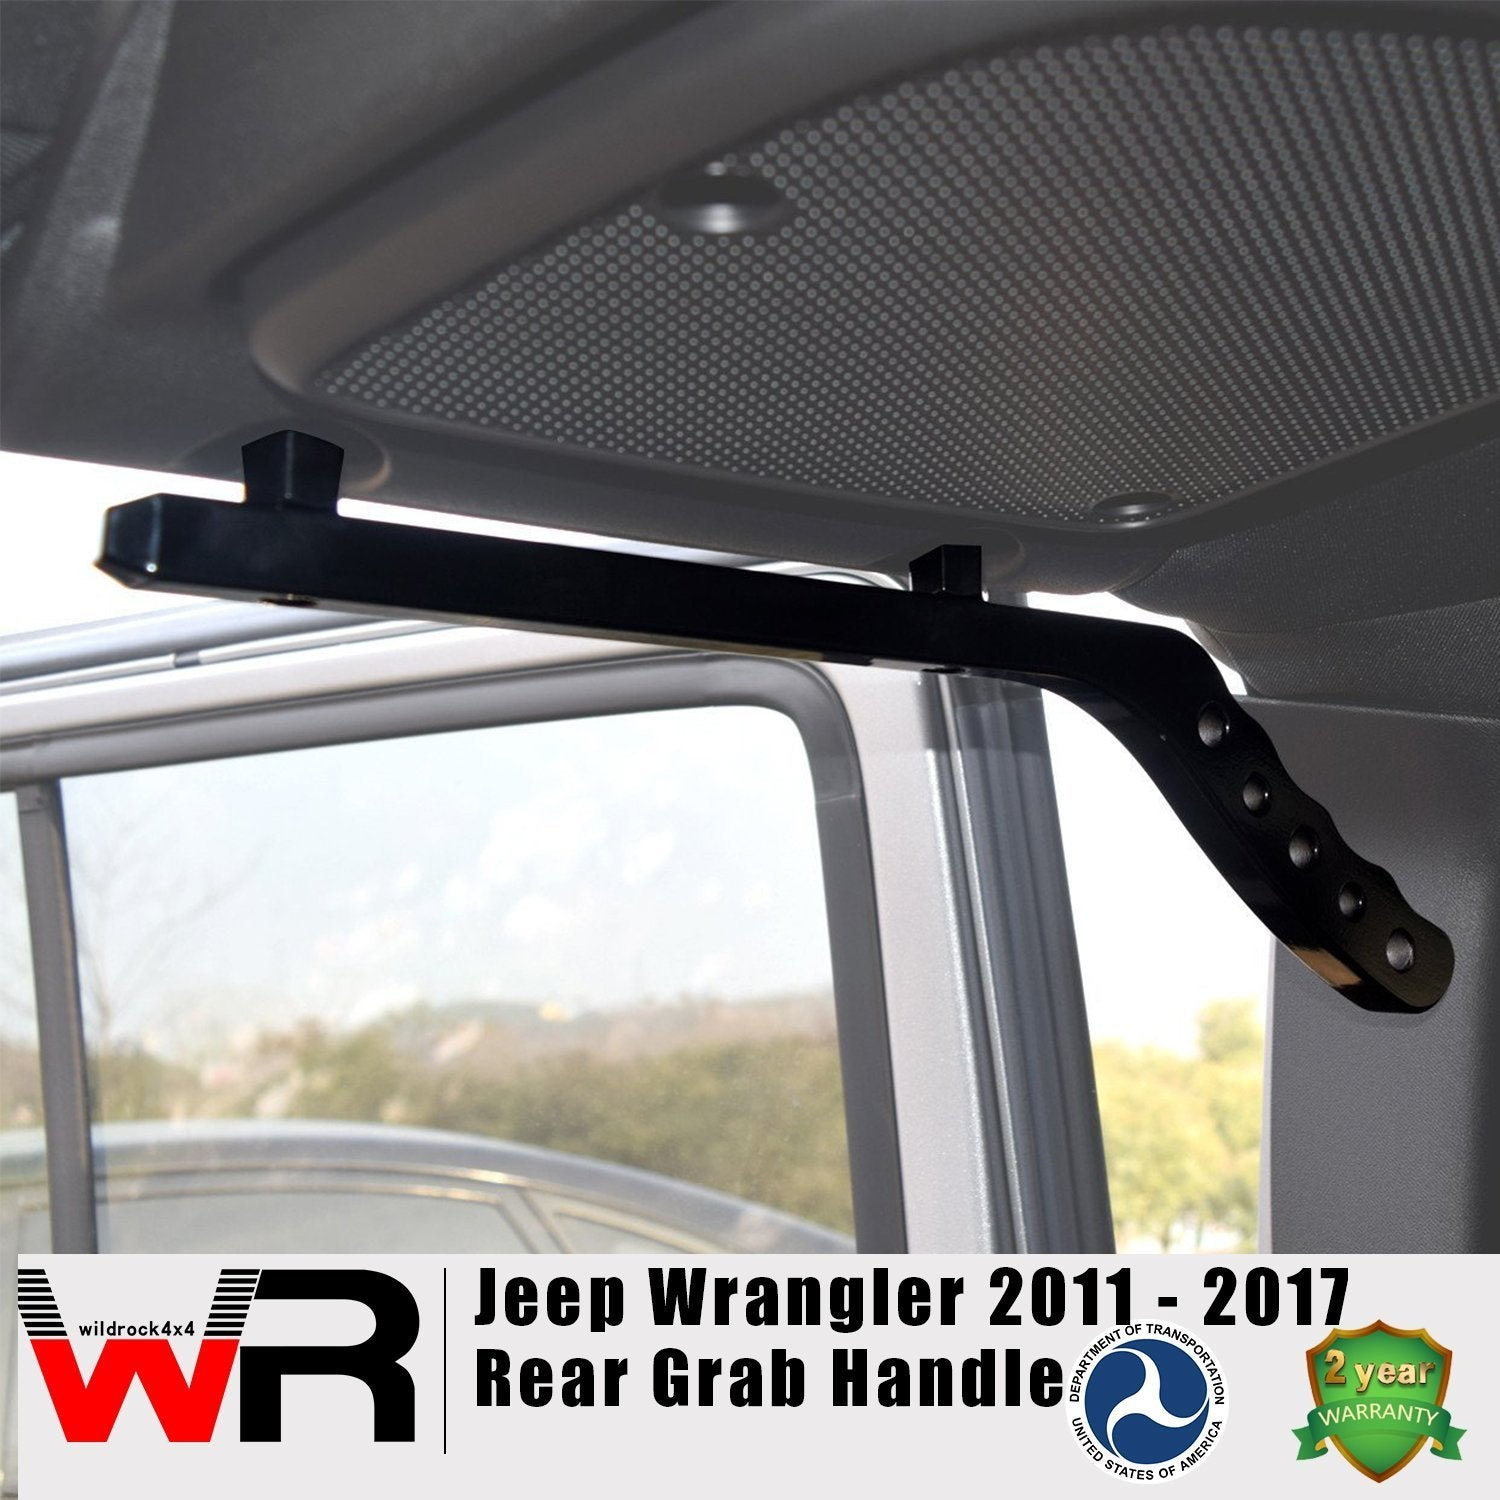 Rear Aluminum Handles for 4 Door Jeep Wrangler 07-17